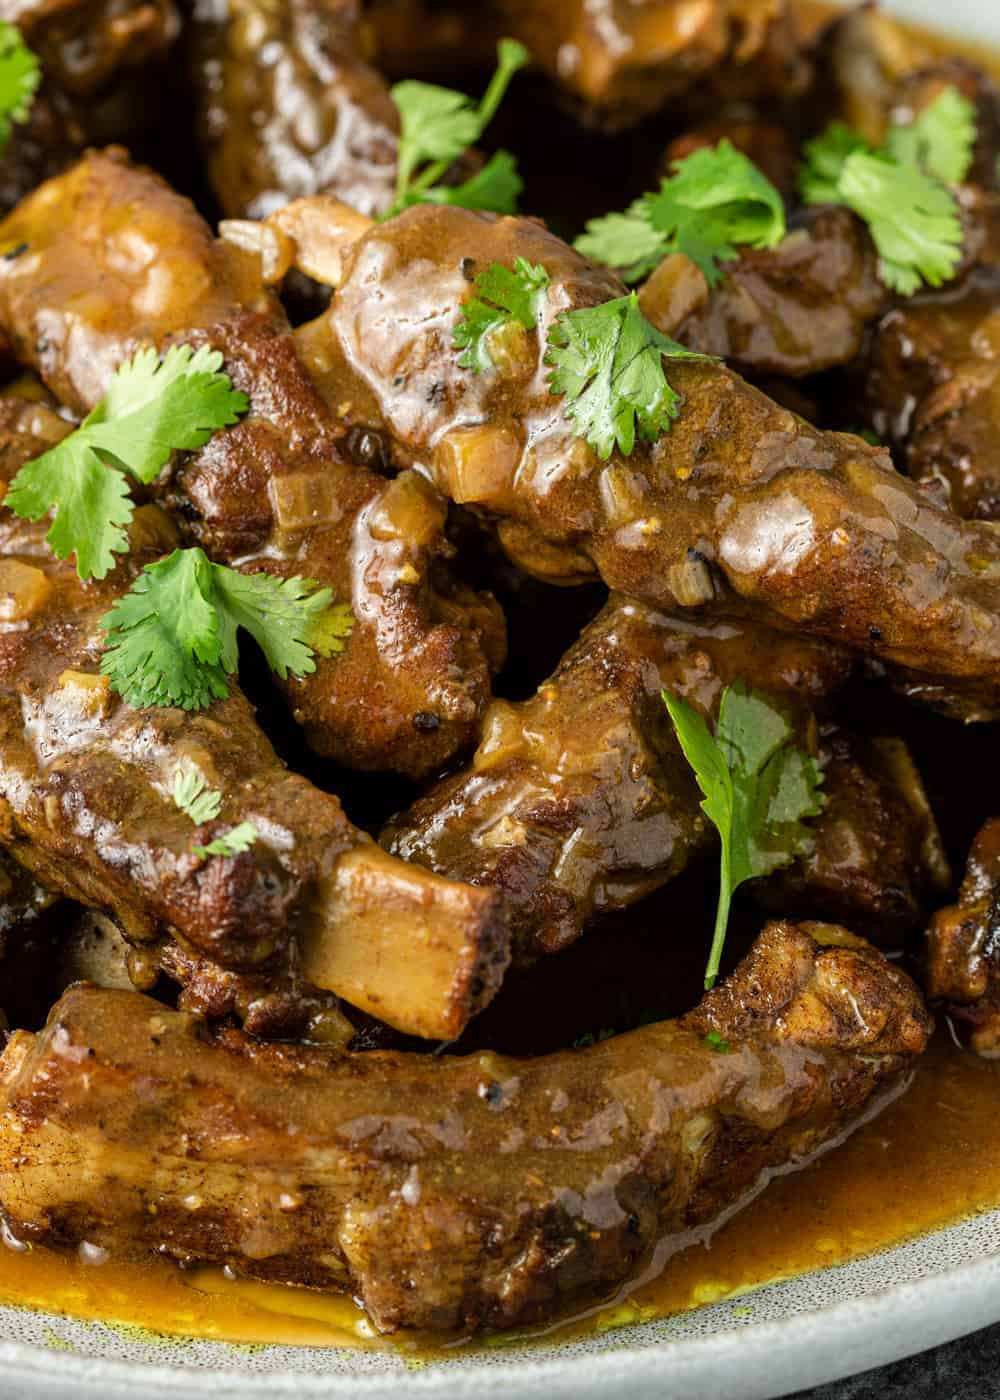 close up photo: pork ribs in Instant Pot covered with brown sauce and cilantro garnish